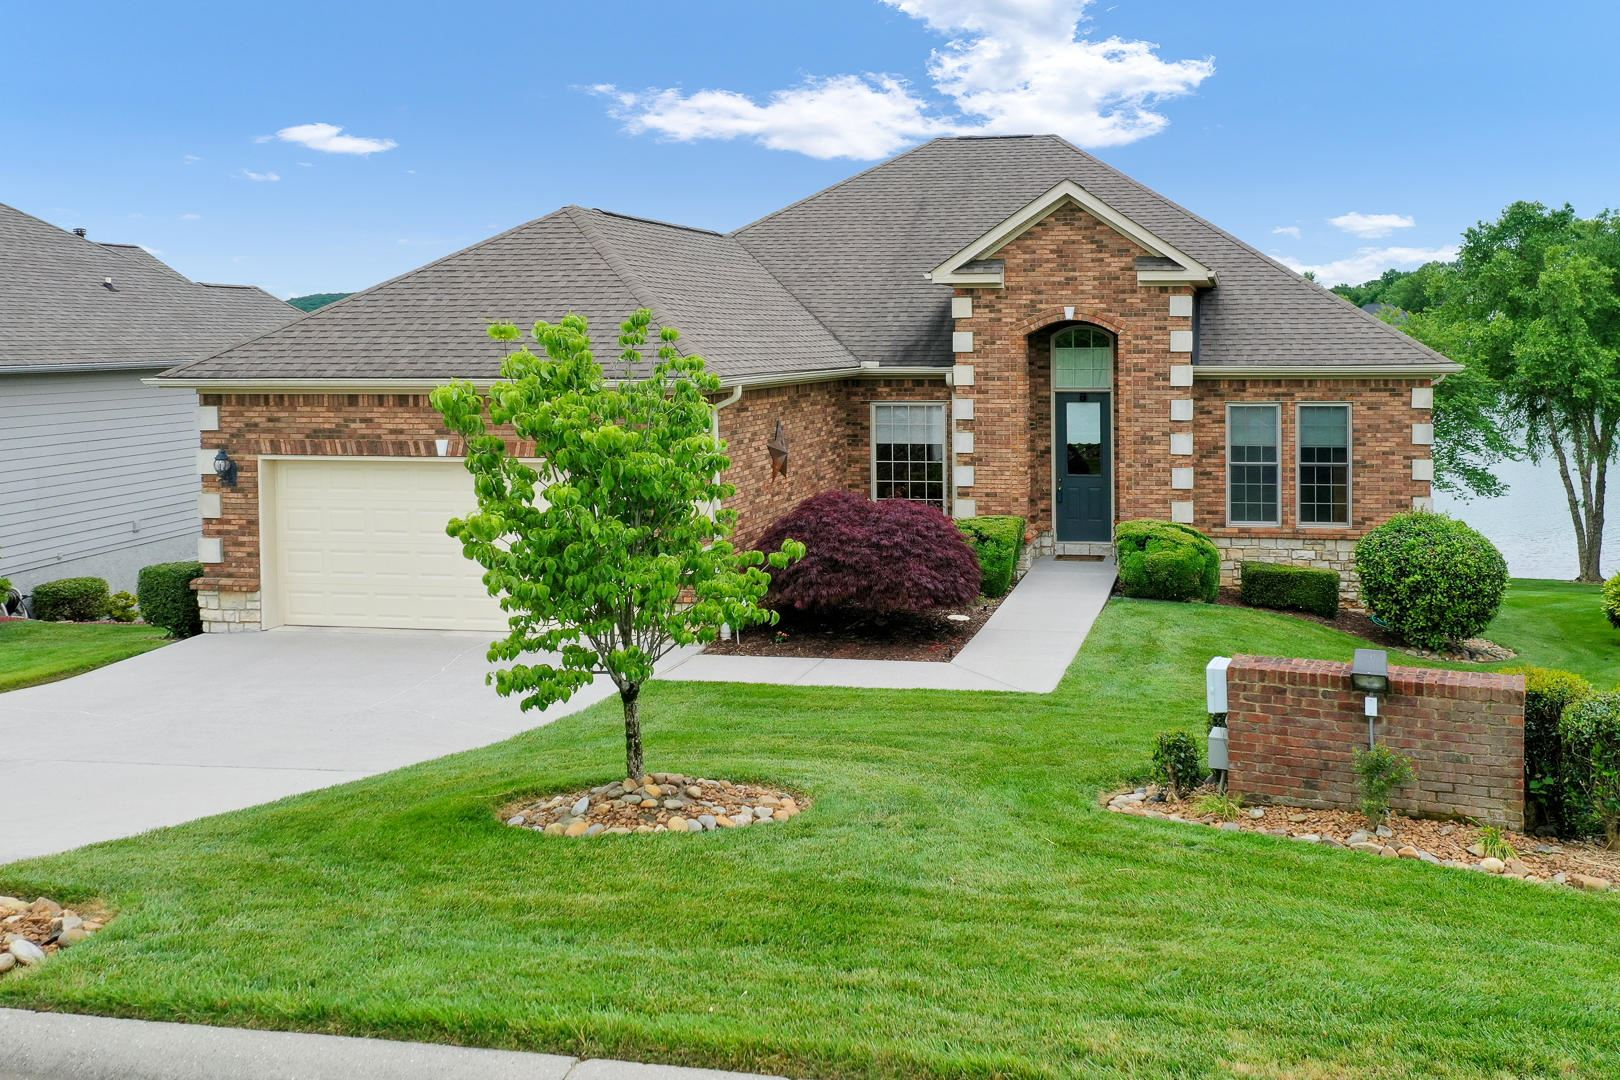 Photo for 241 Coyatee Shores, Loudon, TN 37774 (MLS # 1117850)